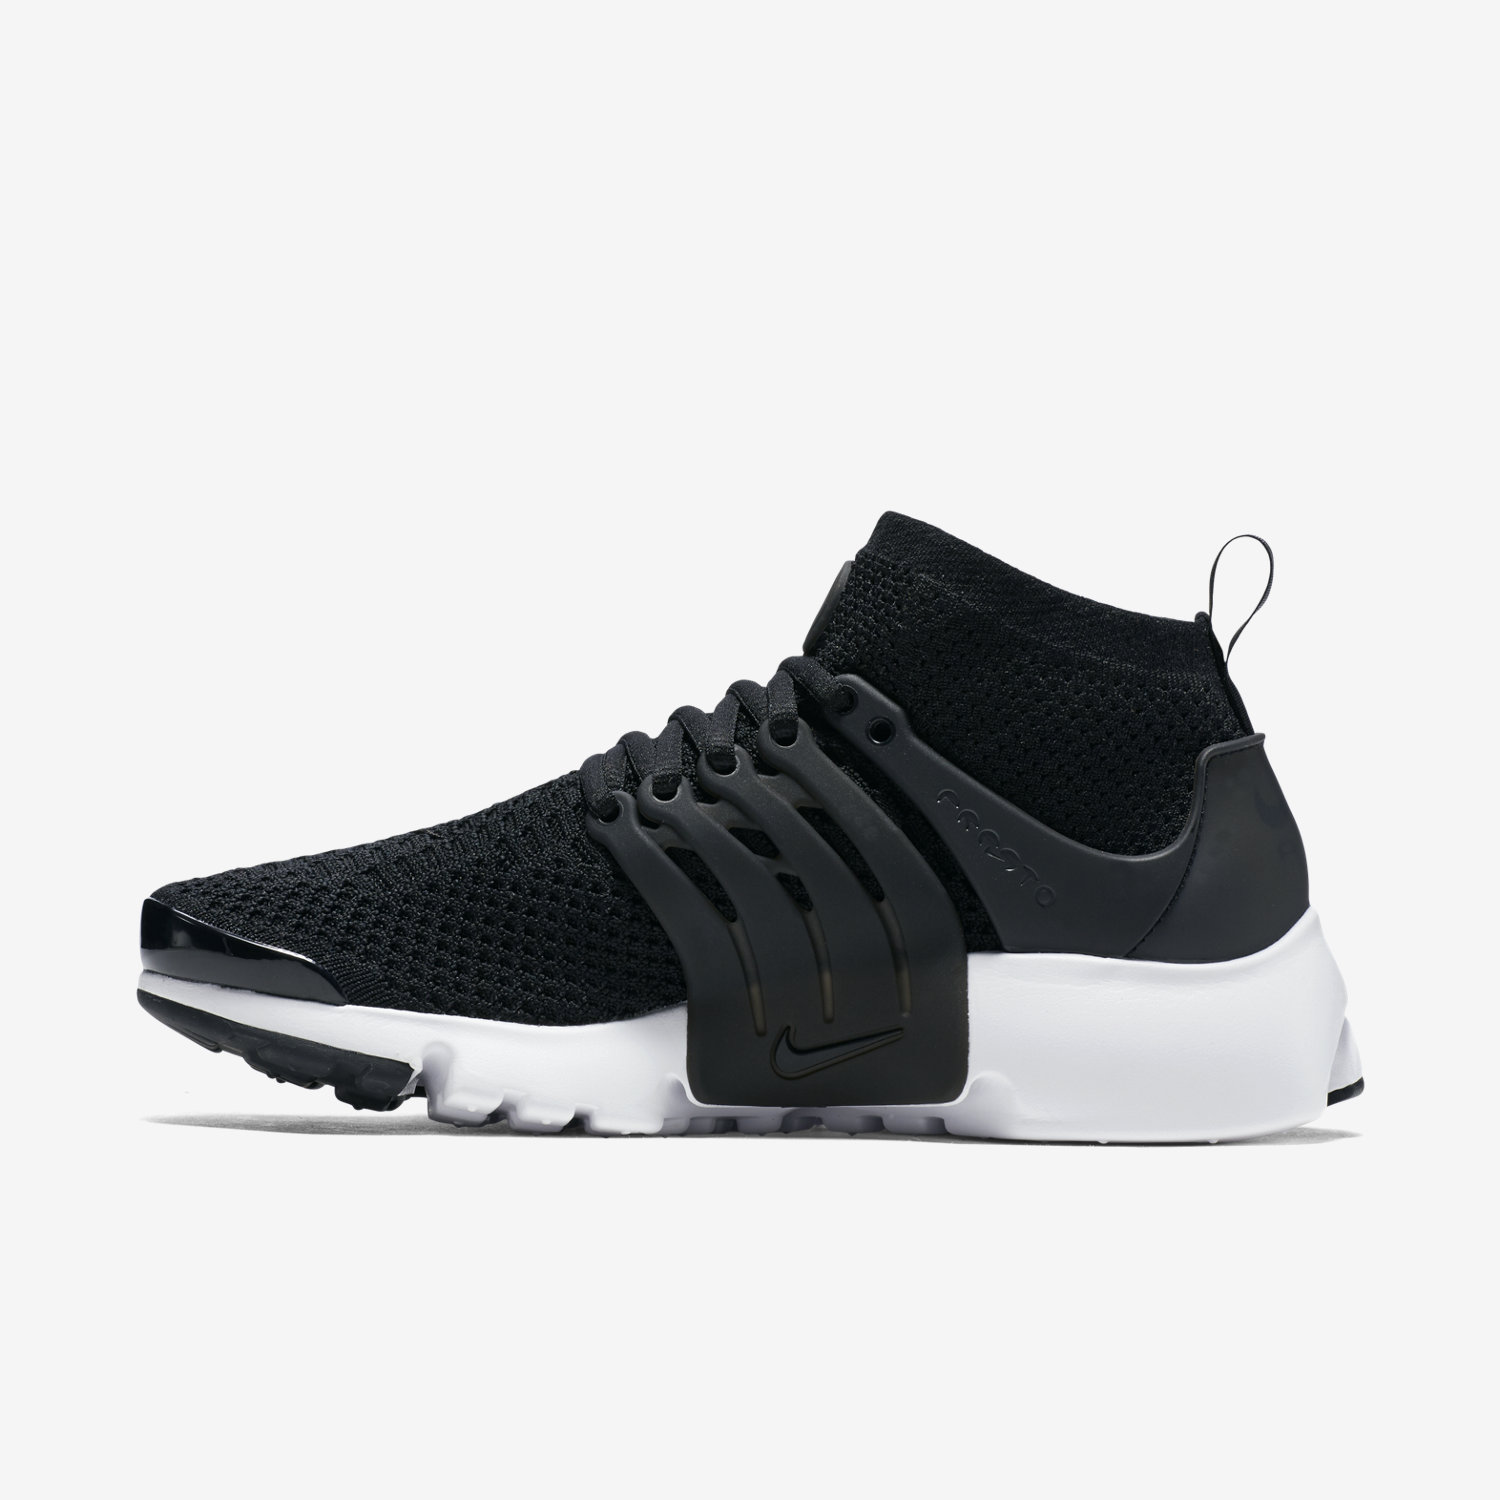 Nike air presto flyknit ultra black white 829553 001 Mens Sport Shoes  Nike  Air Presto Ultra Flyknit Women s Shoe. 9120c8fa5